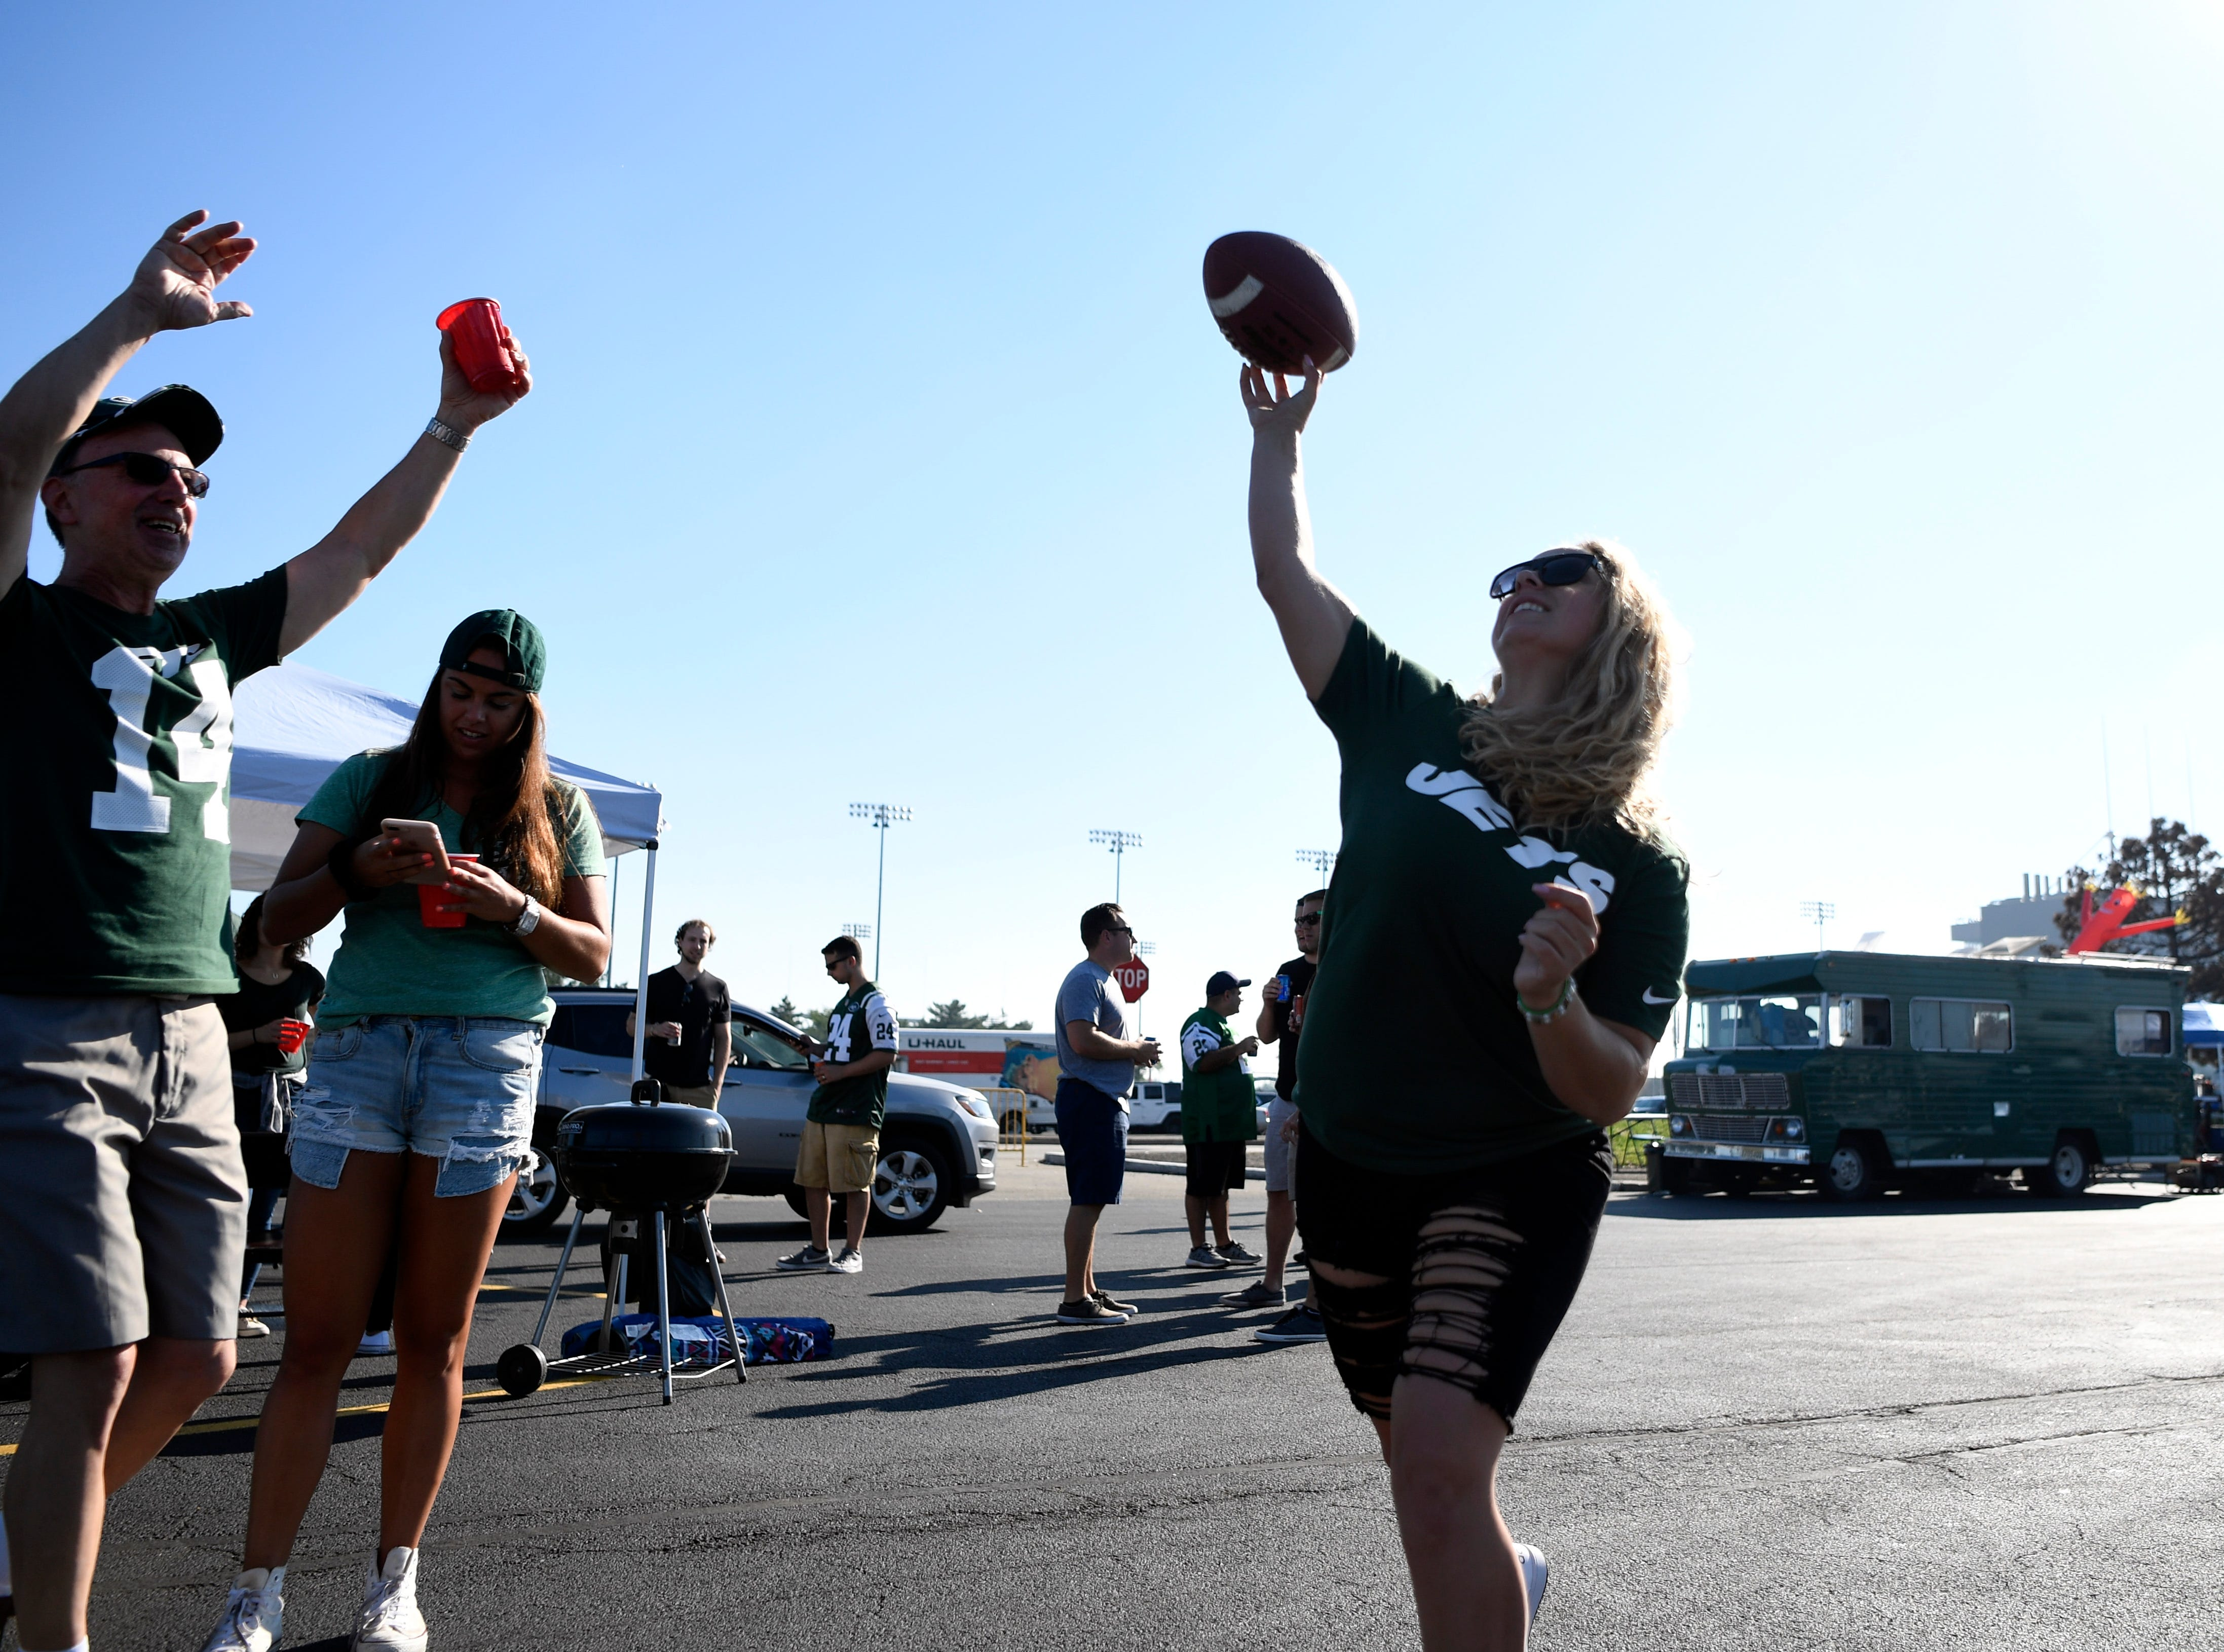 Paramus residents Ally Vergona, right, throws the football as Ed Boffalo pretends to block her. New York Jets face the Miami Dolphins in Week 2 at MetLife Stadium in East Rutherford, NJ on Sunday, September 16, 2018.